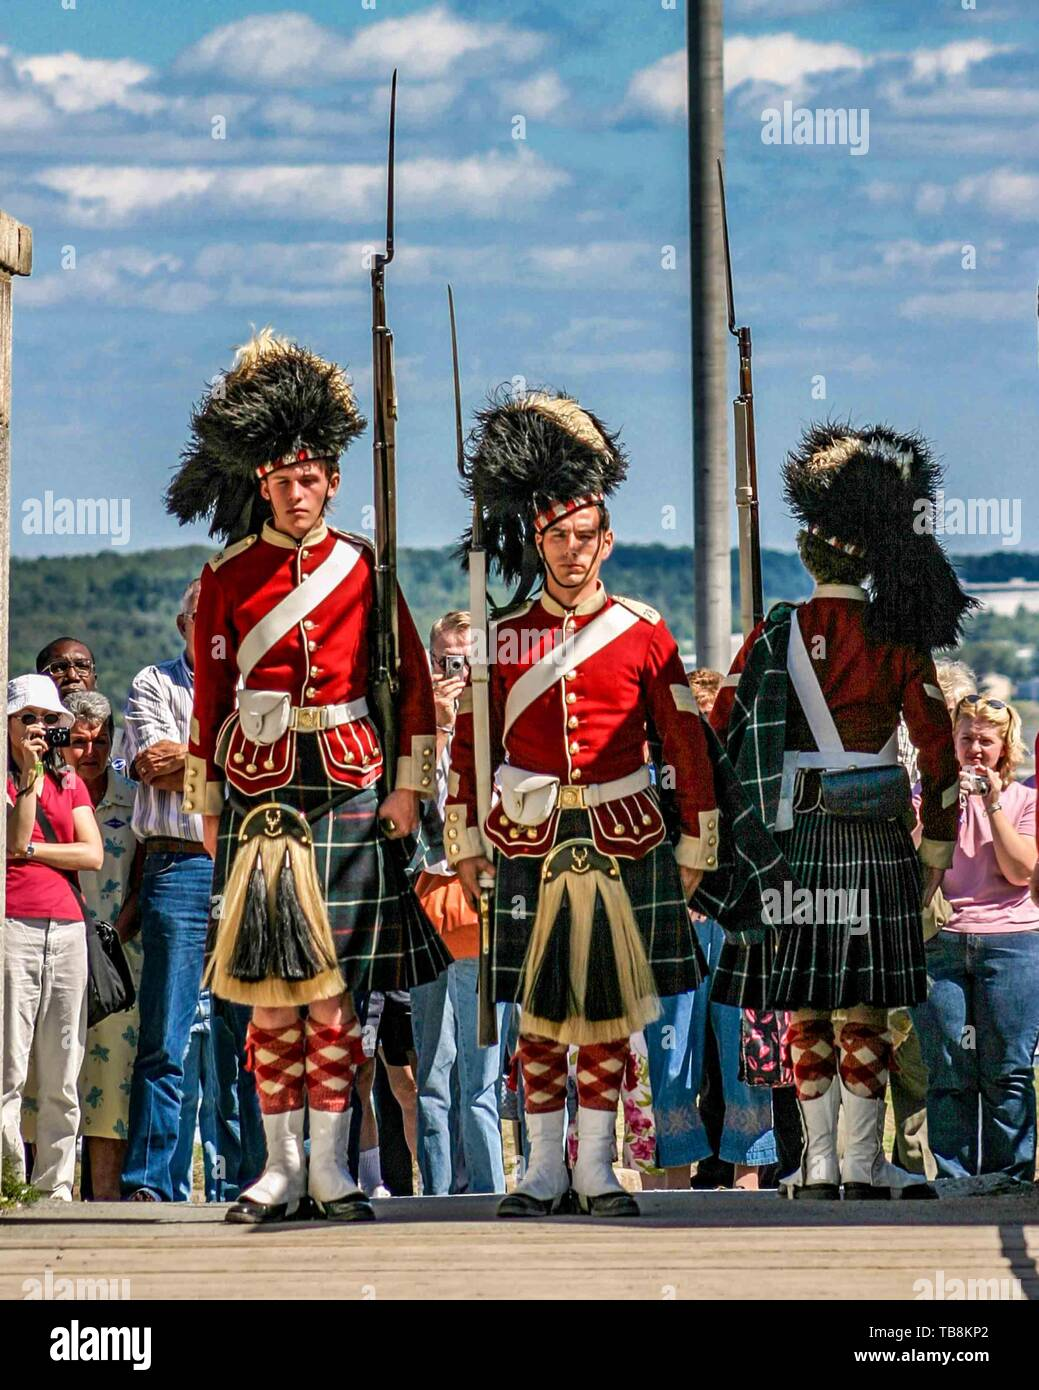 Halifax, Nova Scotia, Canada. 5th Sep, 2005. Tourists watch a changing of the guard by re-enactors dressed as soldiers of the 78th Highland Regiment, on Citadel Hill (Fort George), a National Historic Site in Halifax, Nova Scotia. A living history museum, the fort is among the most visited sites in Atlantic Canada. Credit: Arnold Drapkin/ZUMA Wire/Alamy Live News - Stock Image